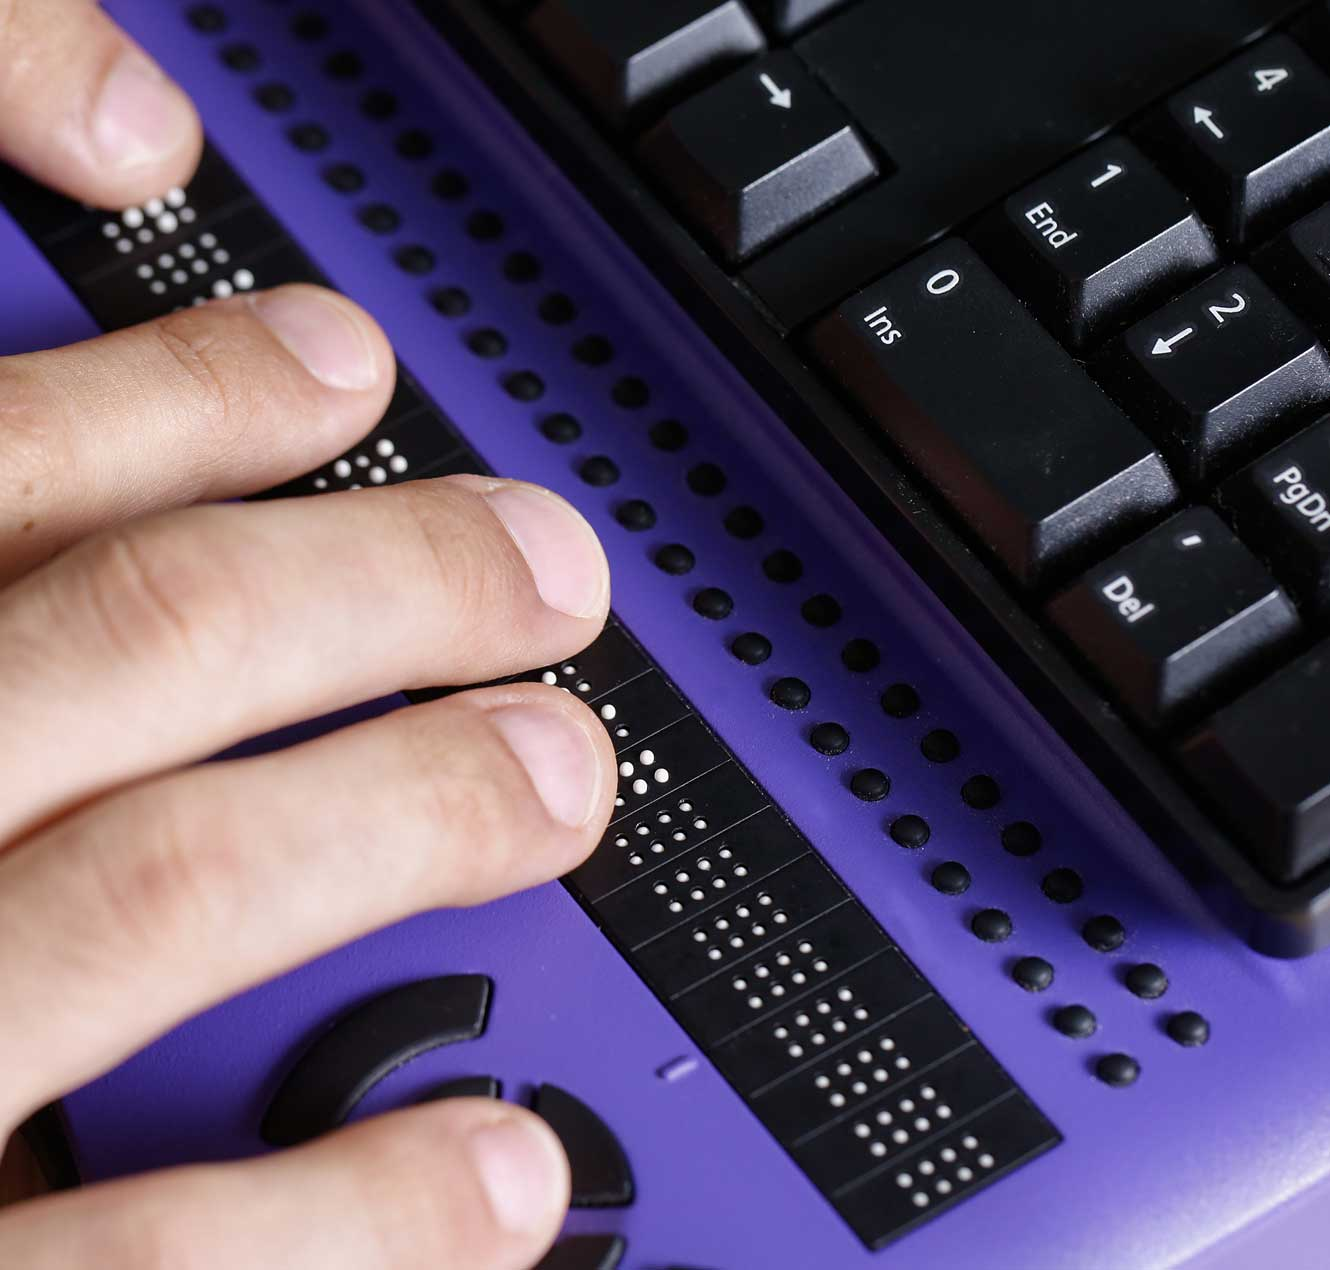 A person using a braille integrated keyboard